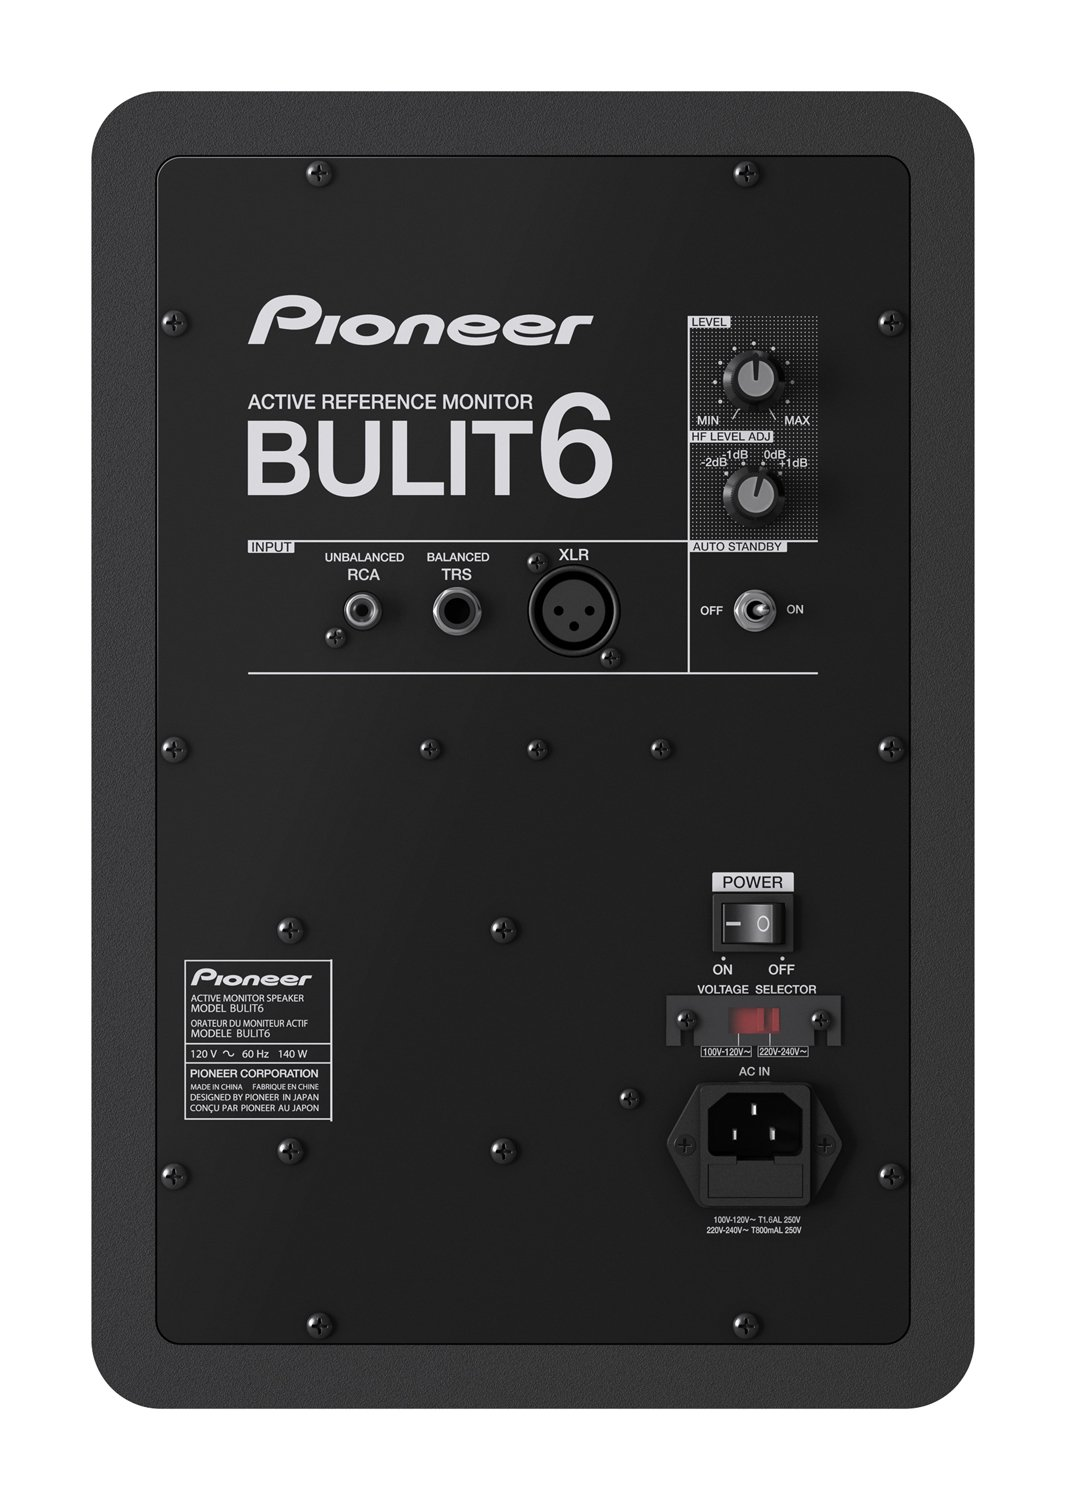 Back facing Pioneer BULIT6